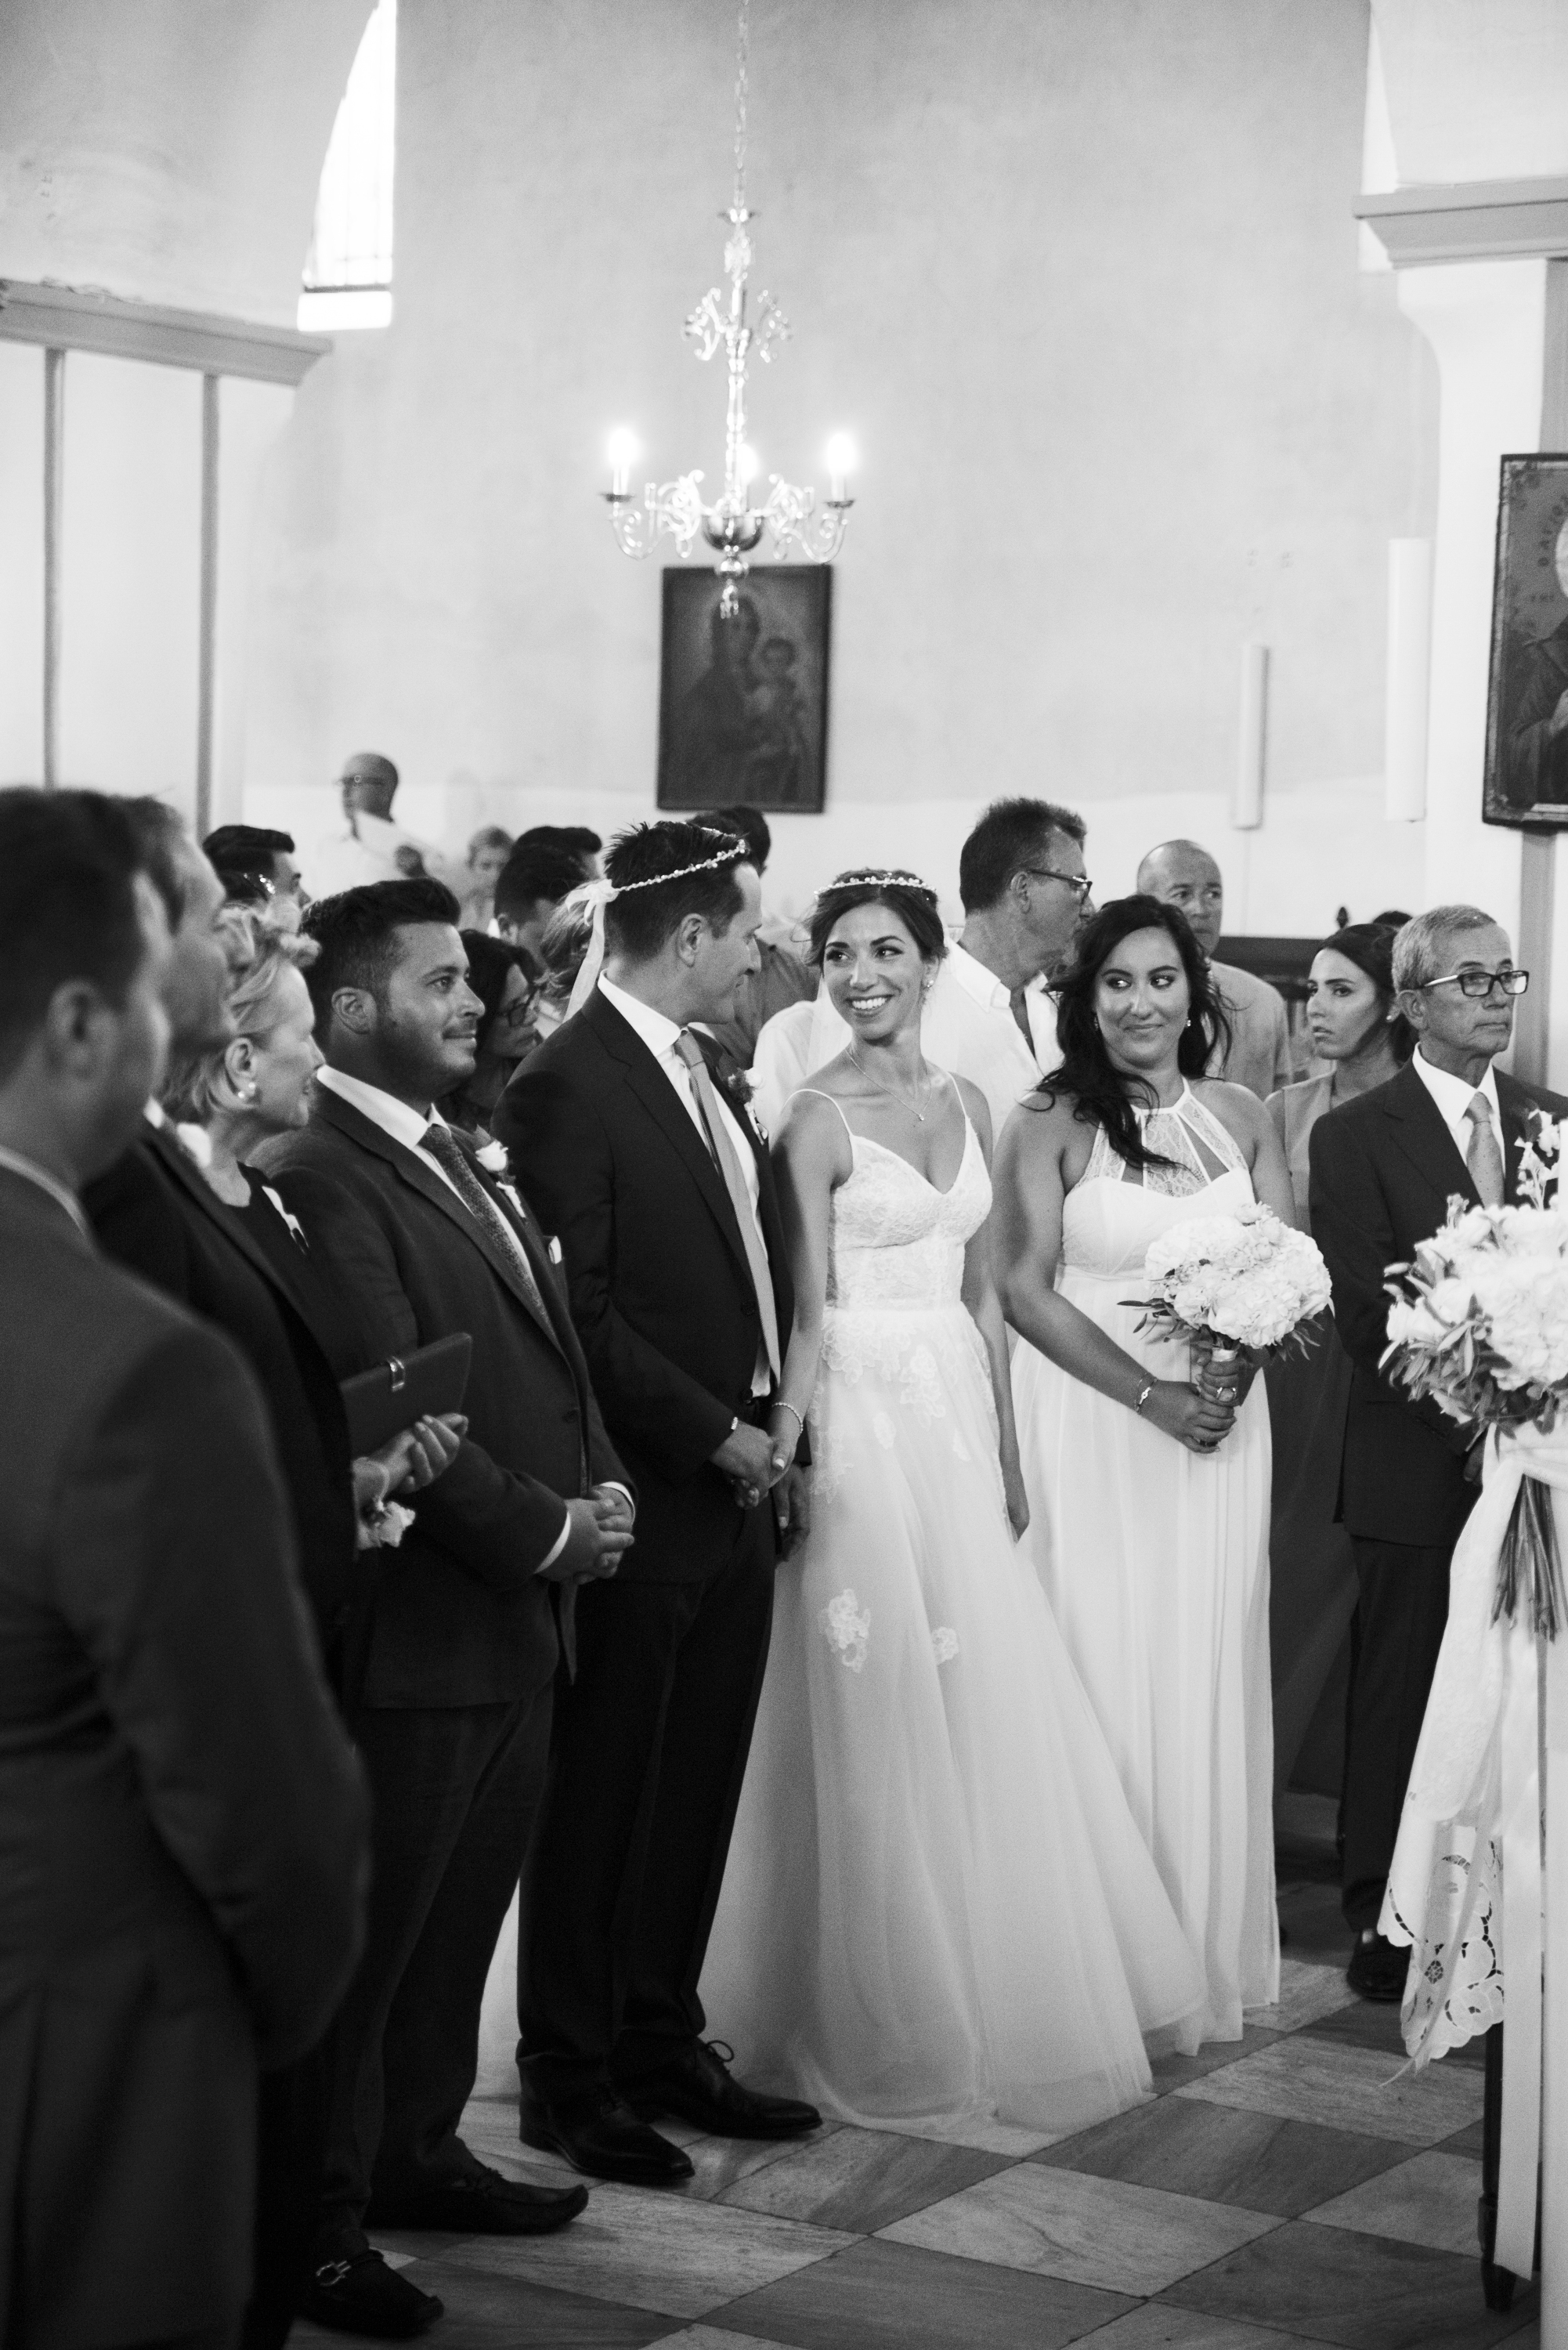 RosewoodWeddingPhotos-DestinationWeddingPhotographer-Greece-Monemvasia-DestinationWedding-WeddingsinGreece-GreekWedding-GreekOrthodoxWedding-WeddingCeremony